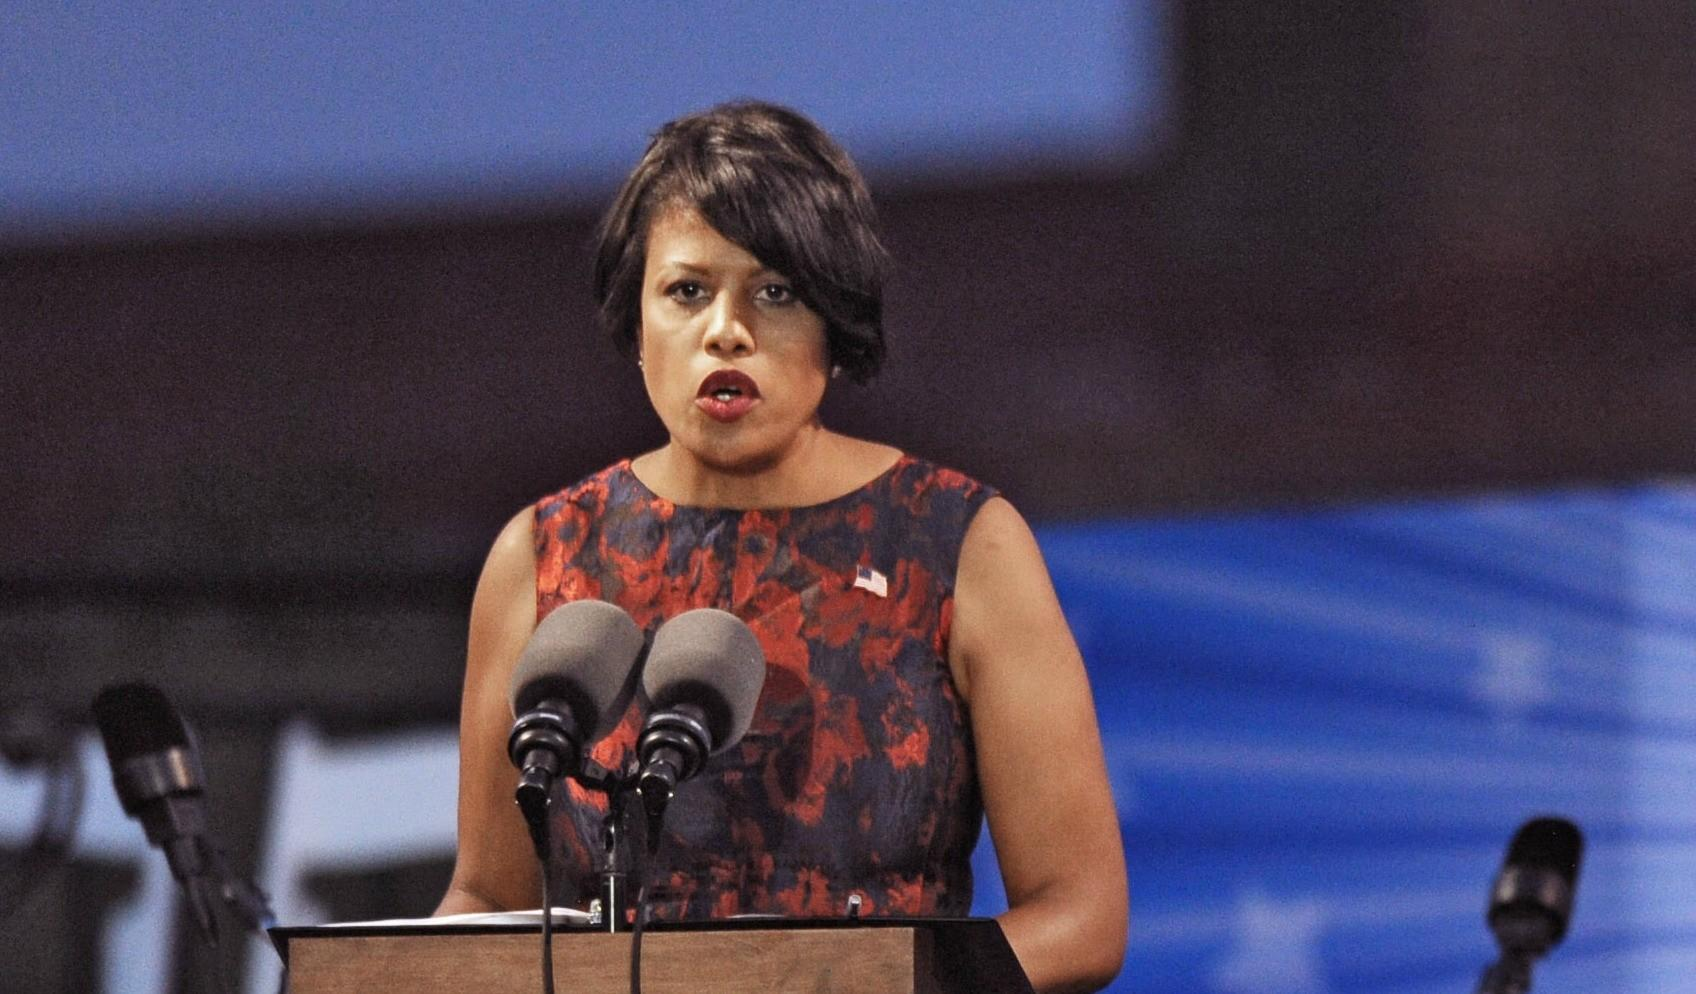 Mayor Stephanie Rawlings-Blake delivers remarks Saturday evening at Ft. McHenry.